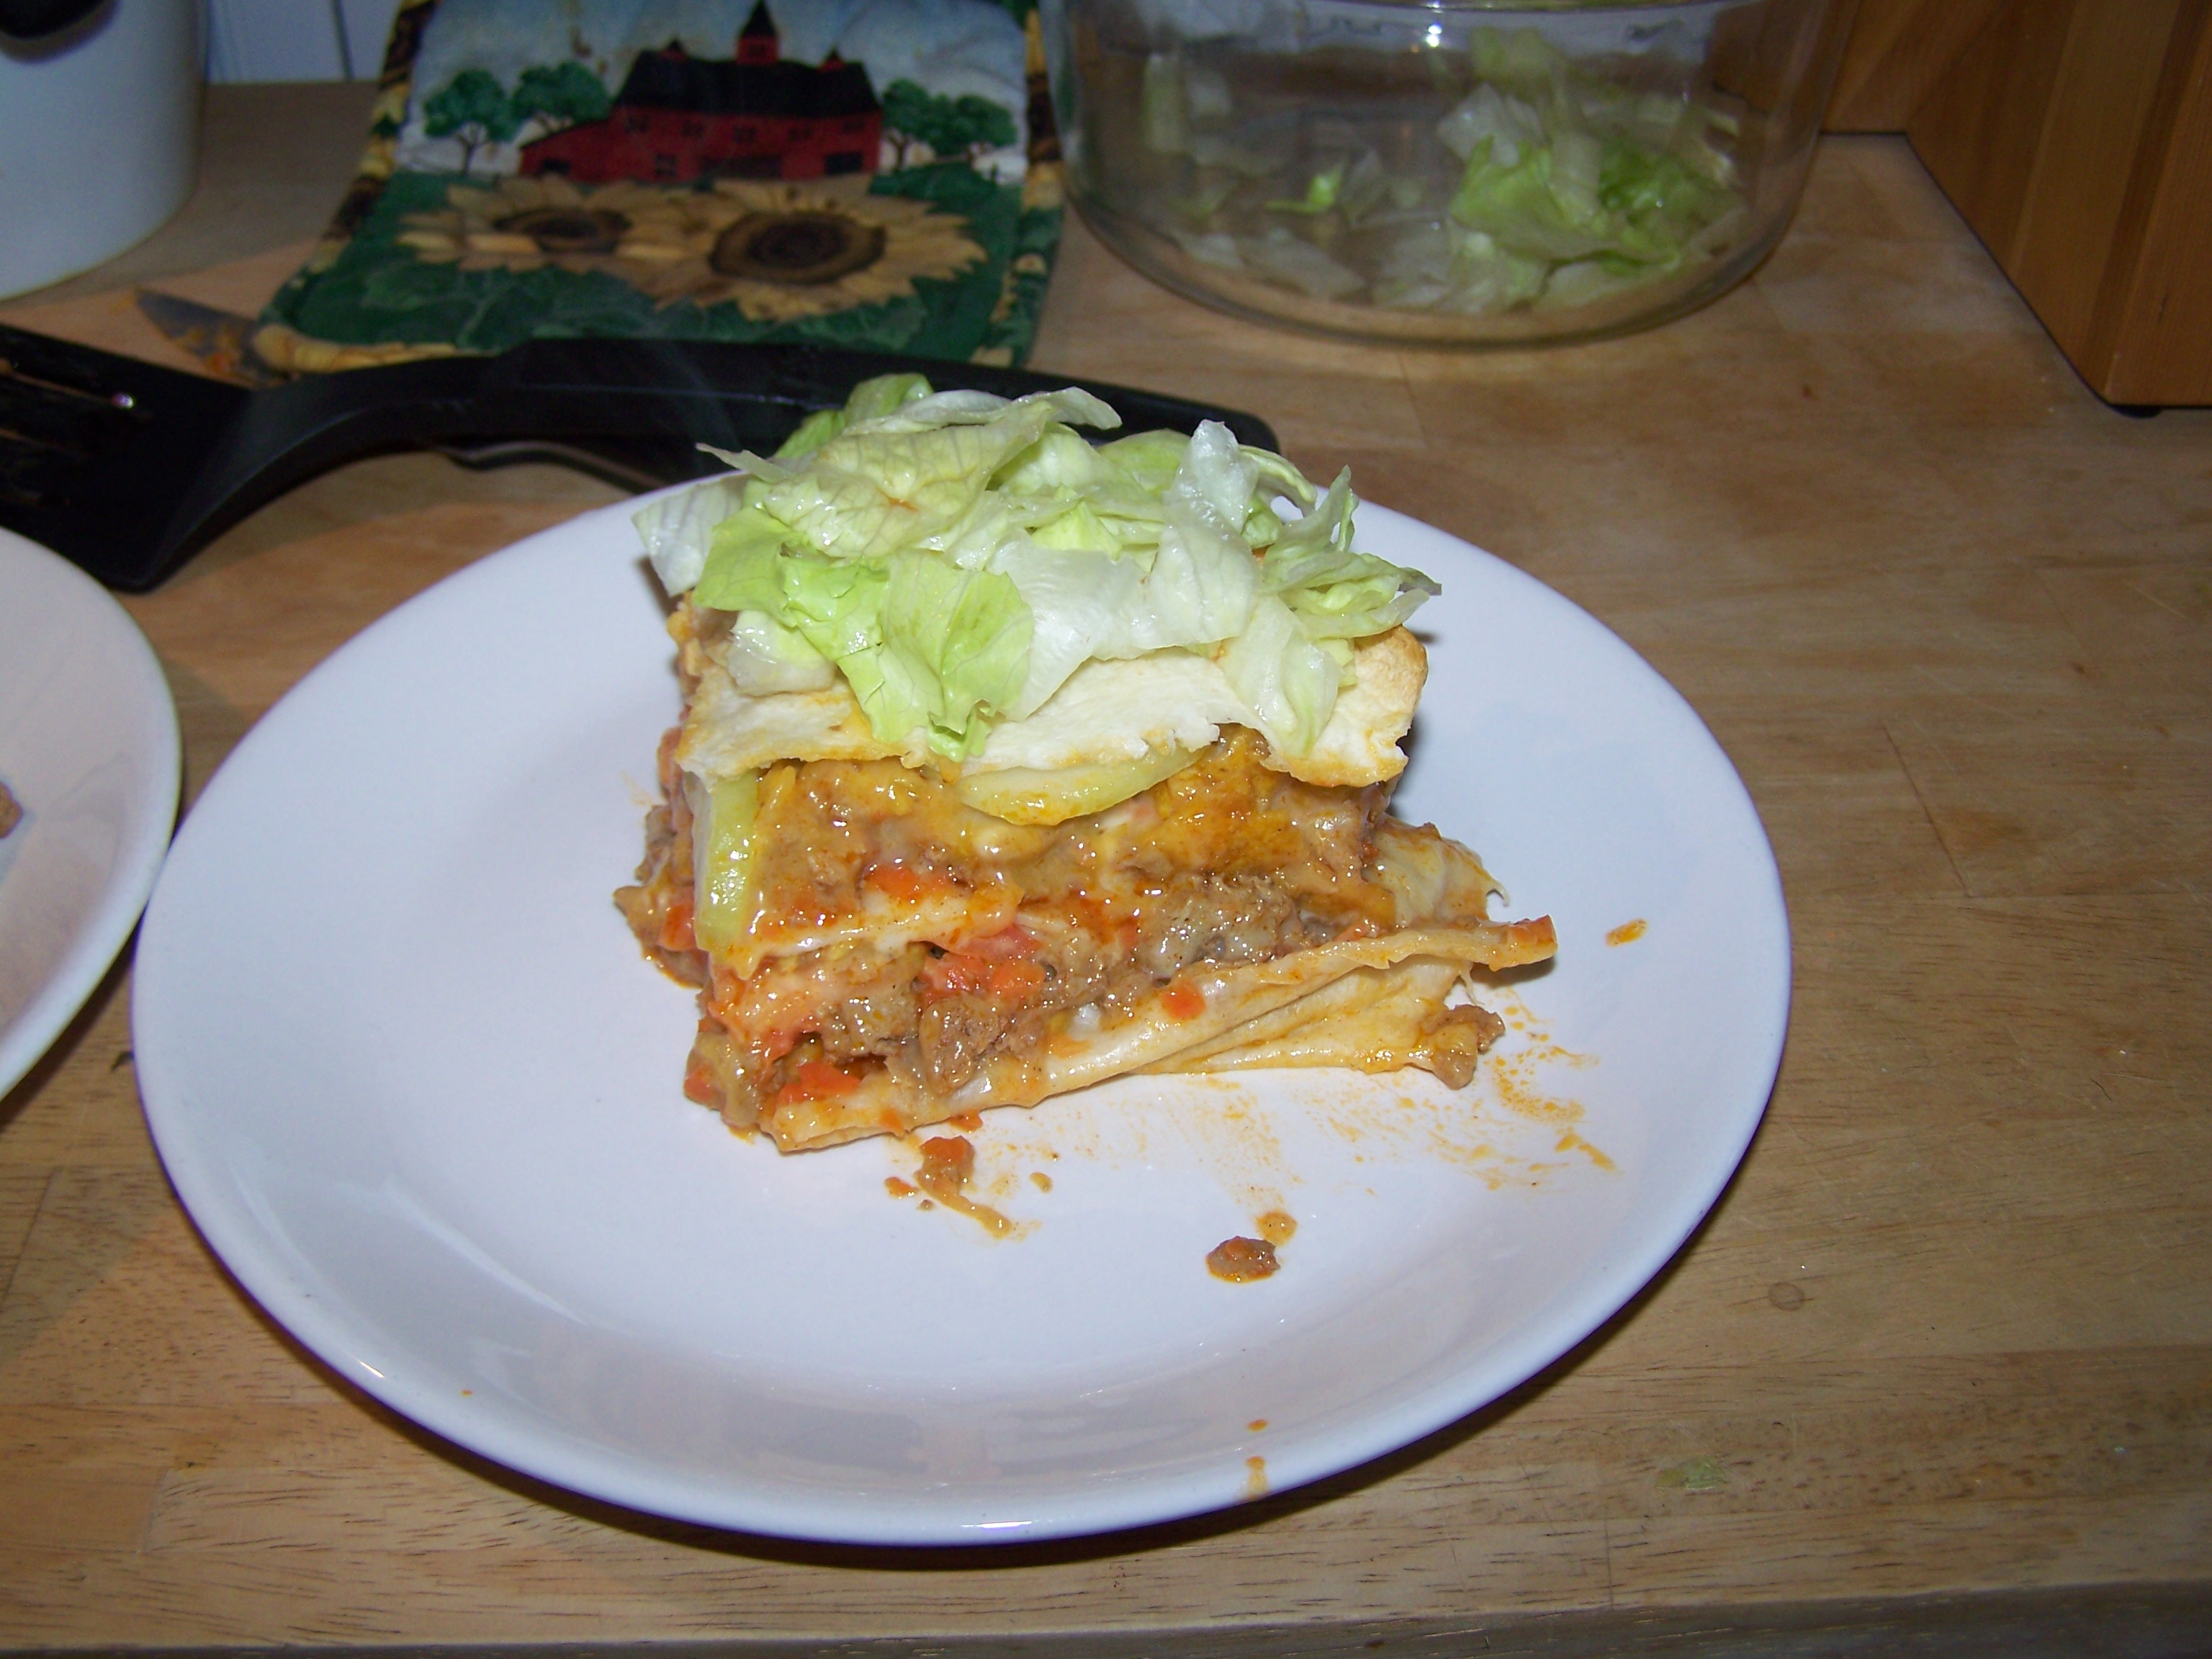 My Kitchen, Lewiston, ME :: The first attempt at the Taco Lasagna(turkey, not beef)...or is it Lasagna Taco...regardless of the syntax, it was excellent